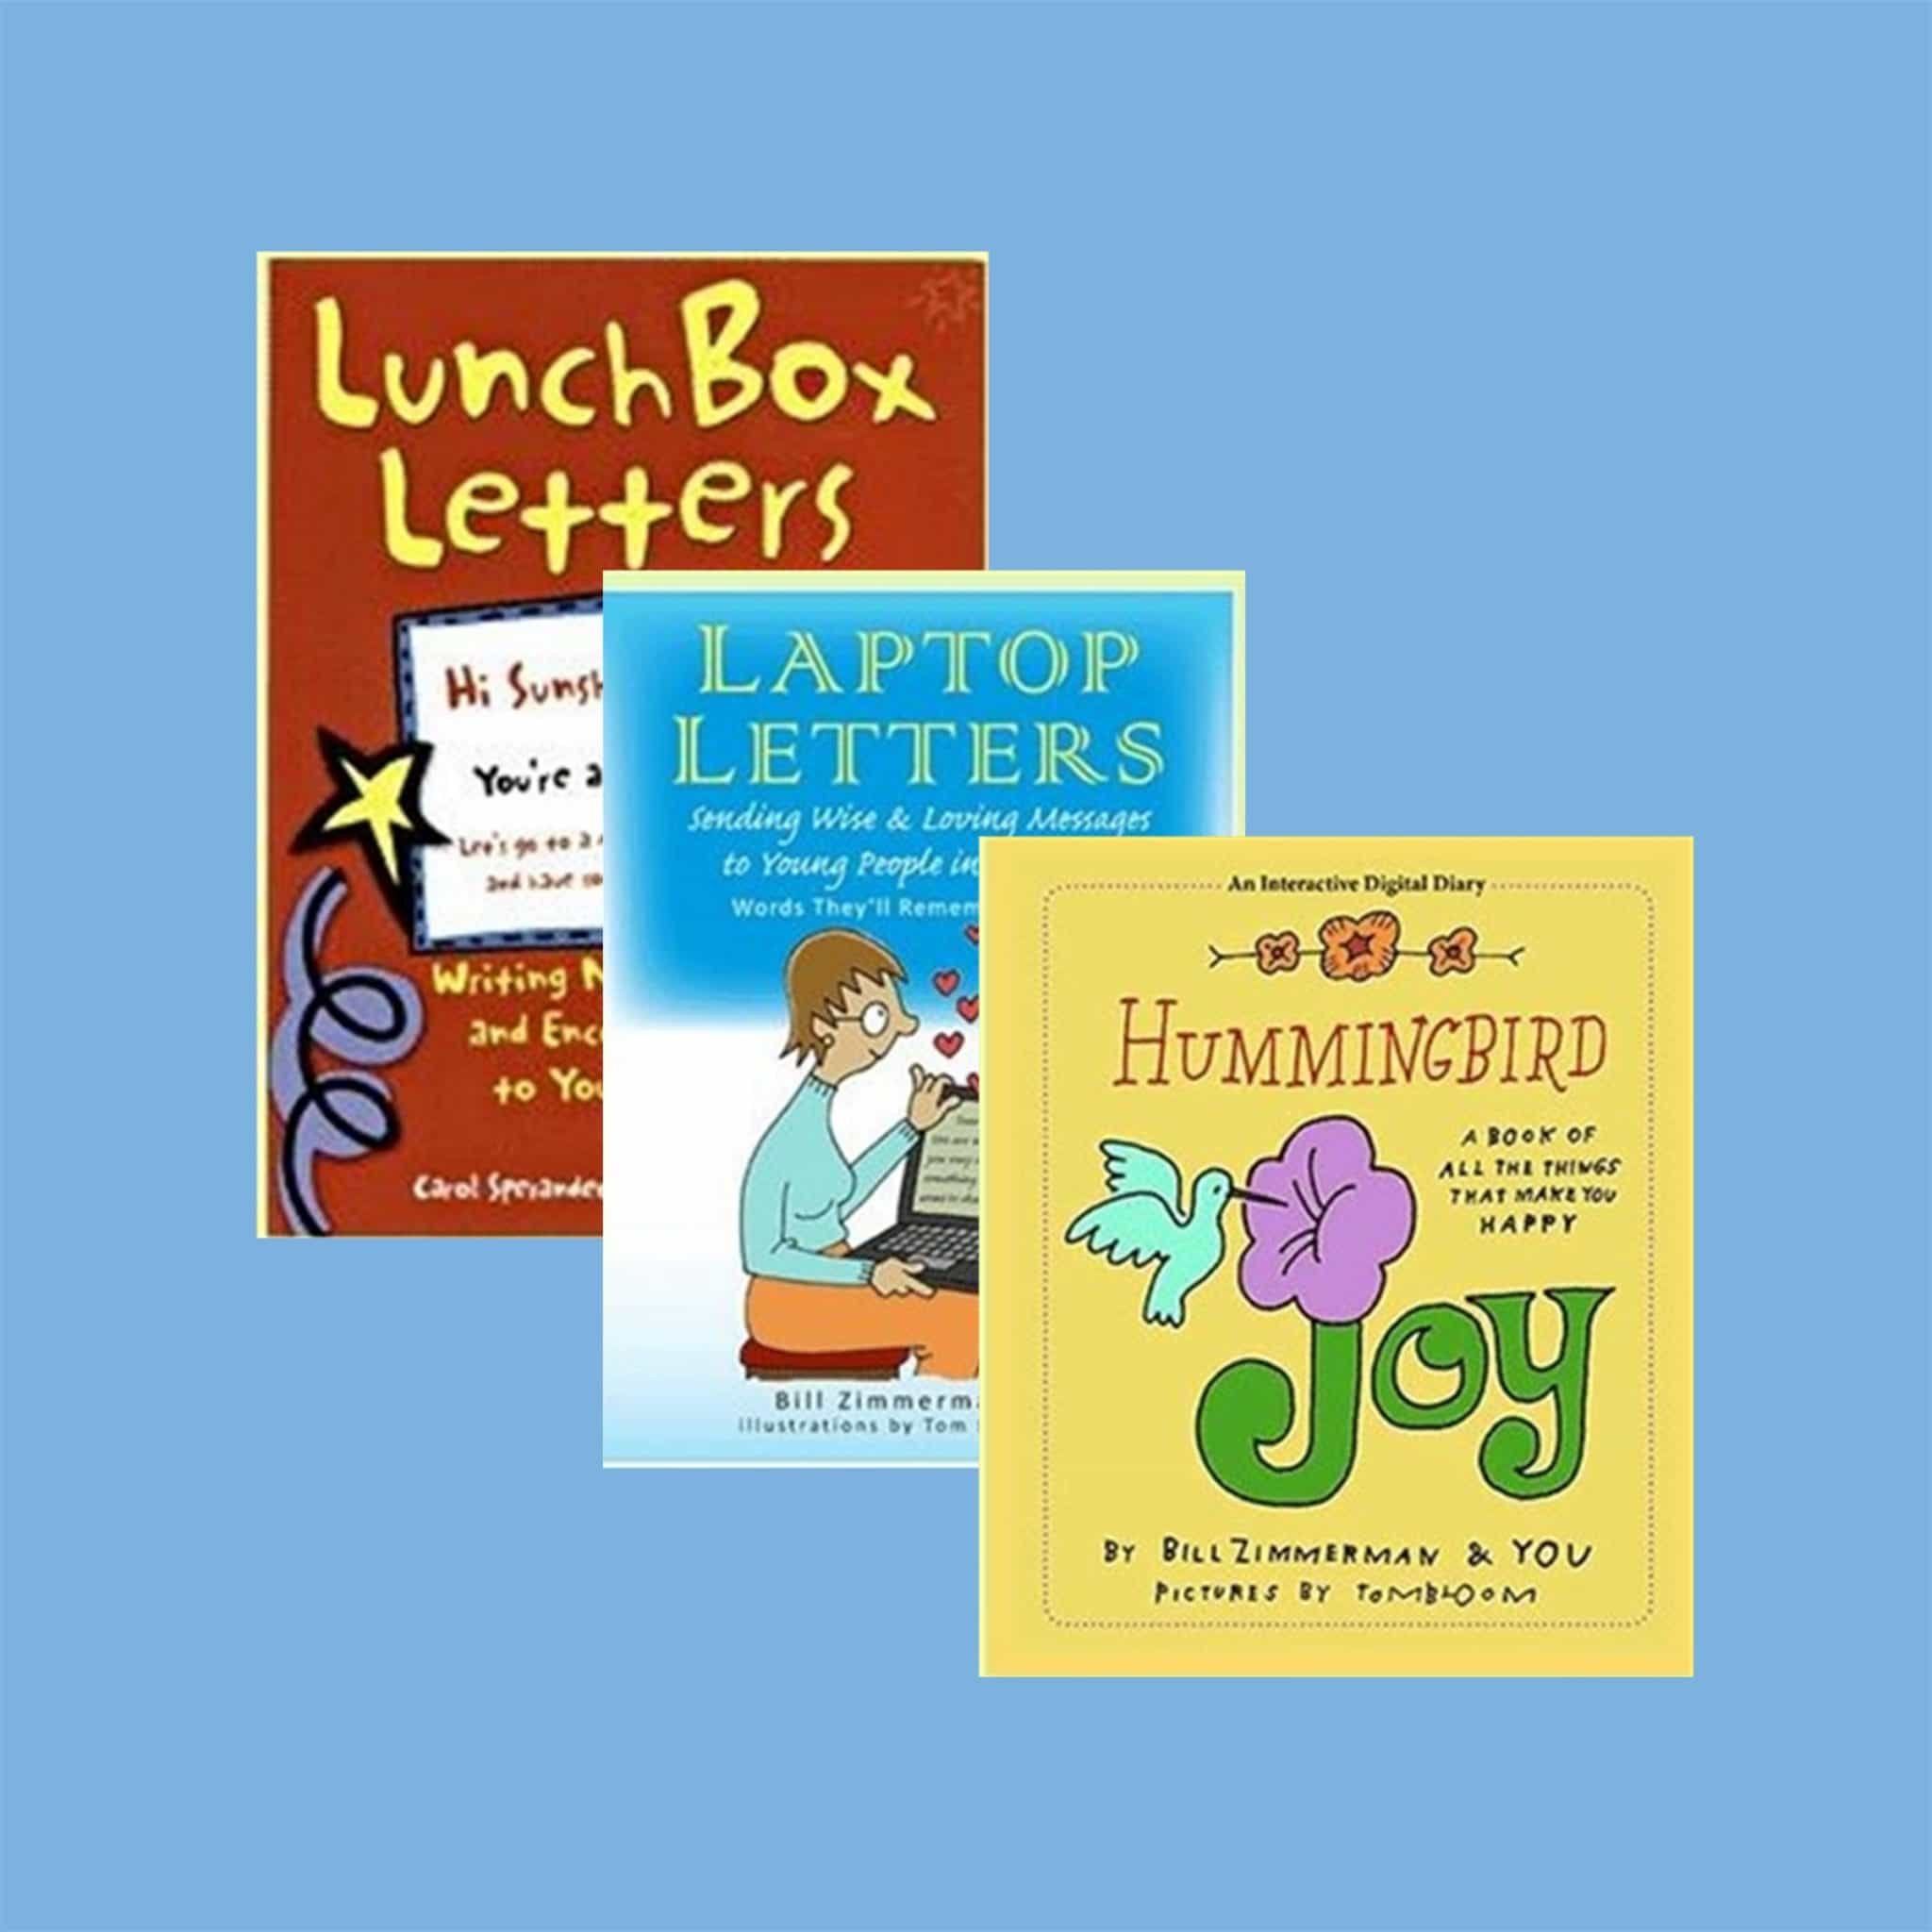 """Lunchbox Letters"", ""Laptop Letters"", & ""Hummingbird Joy"" – books by Bill Zimmerman"